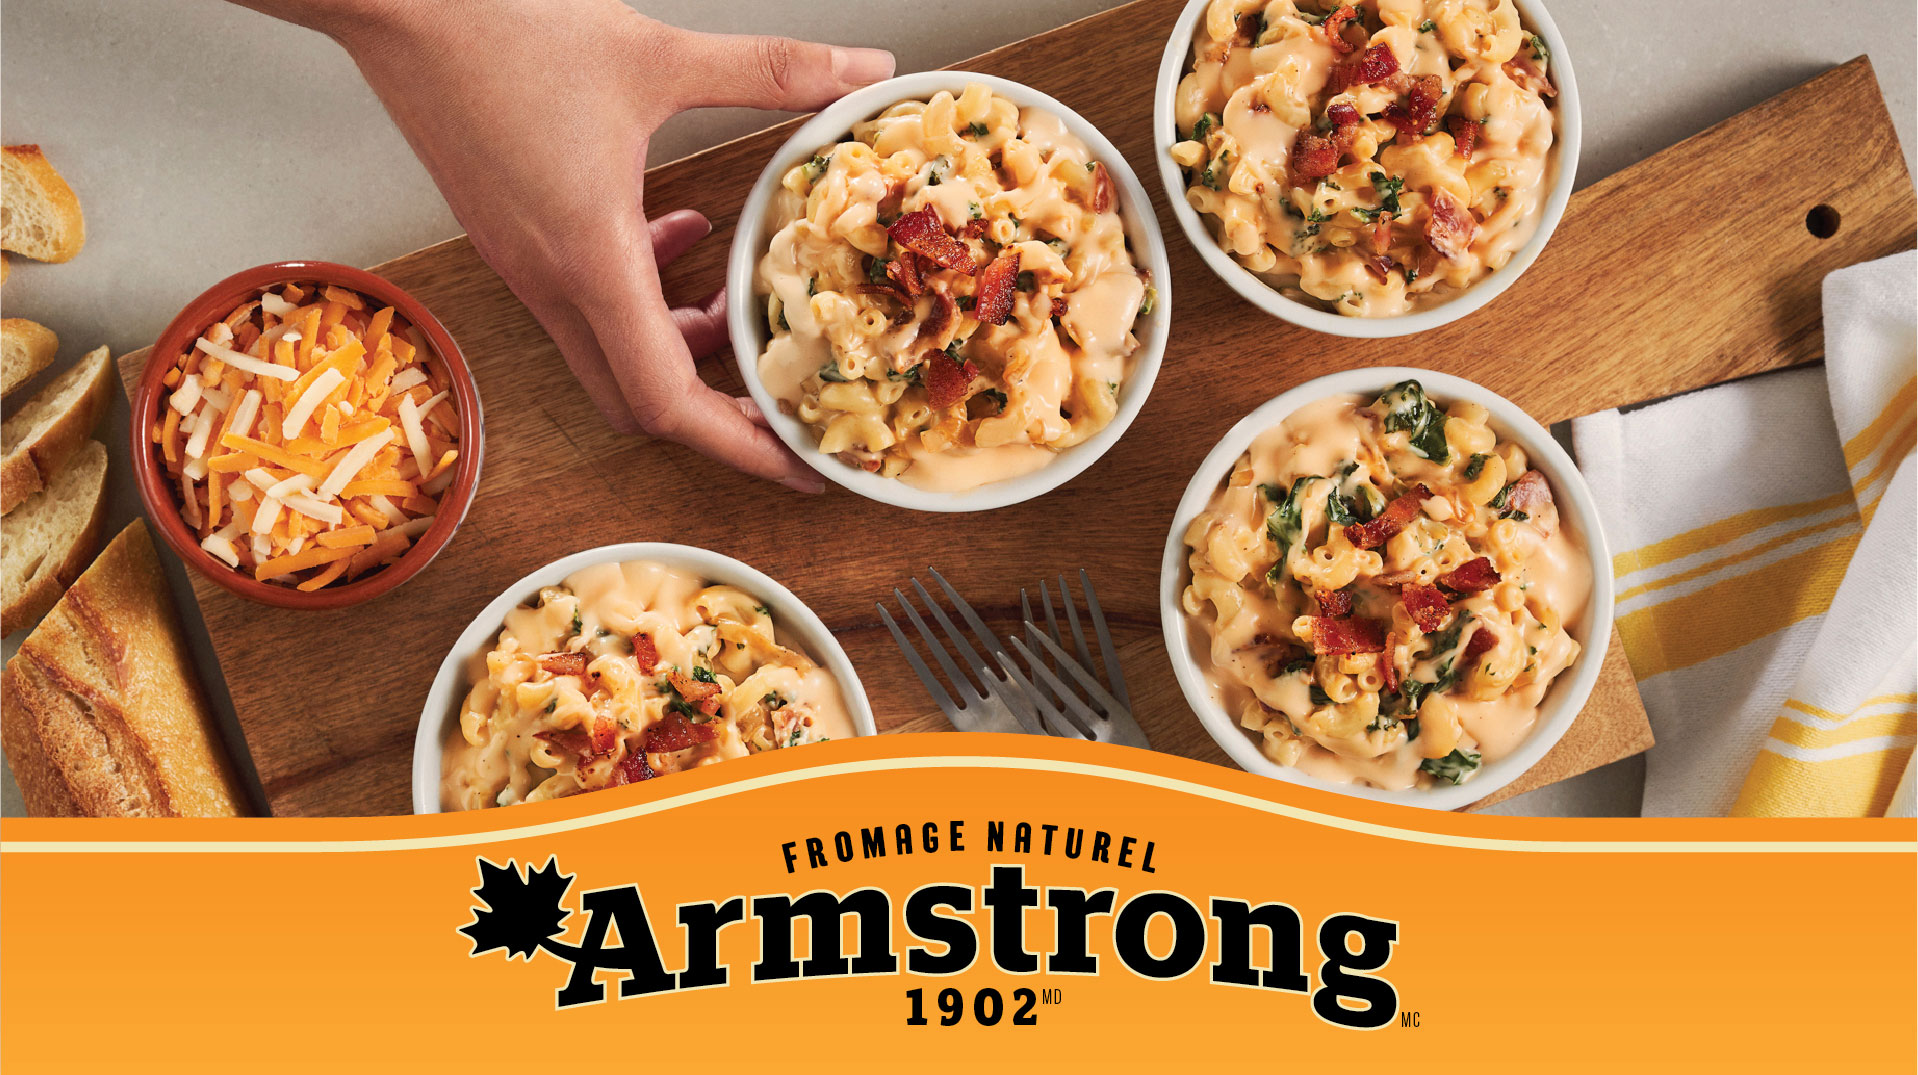 Fromage Armstrong